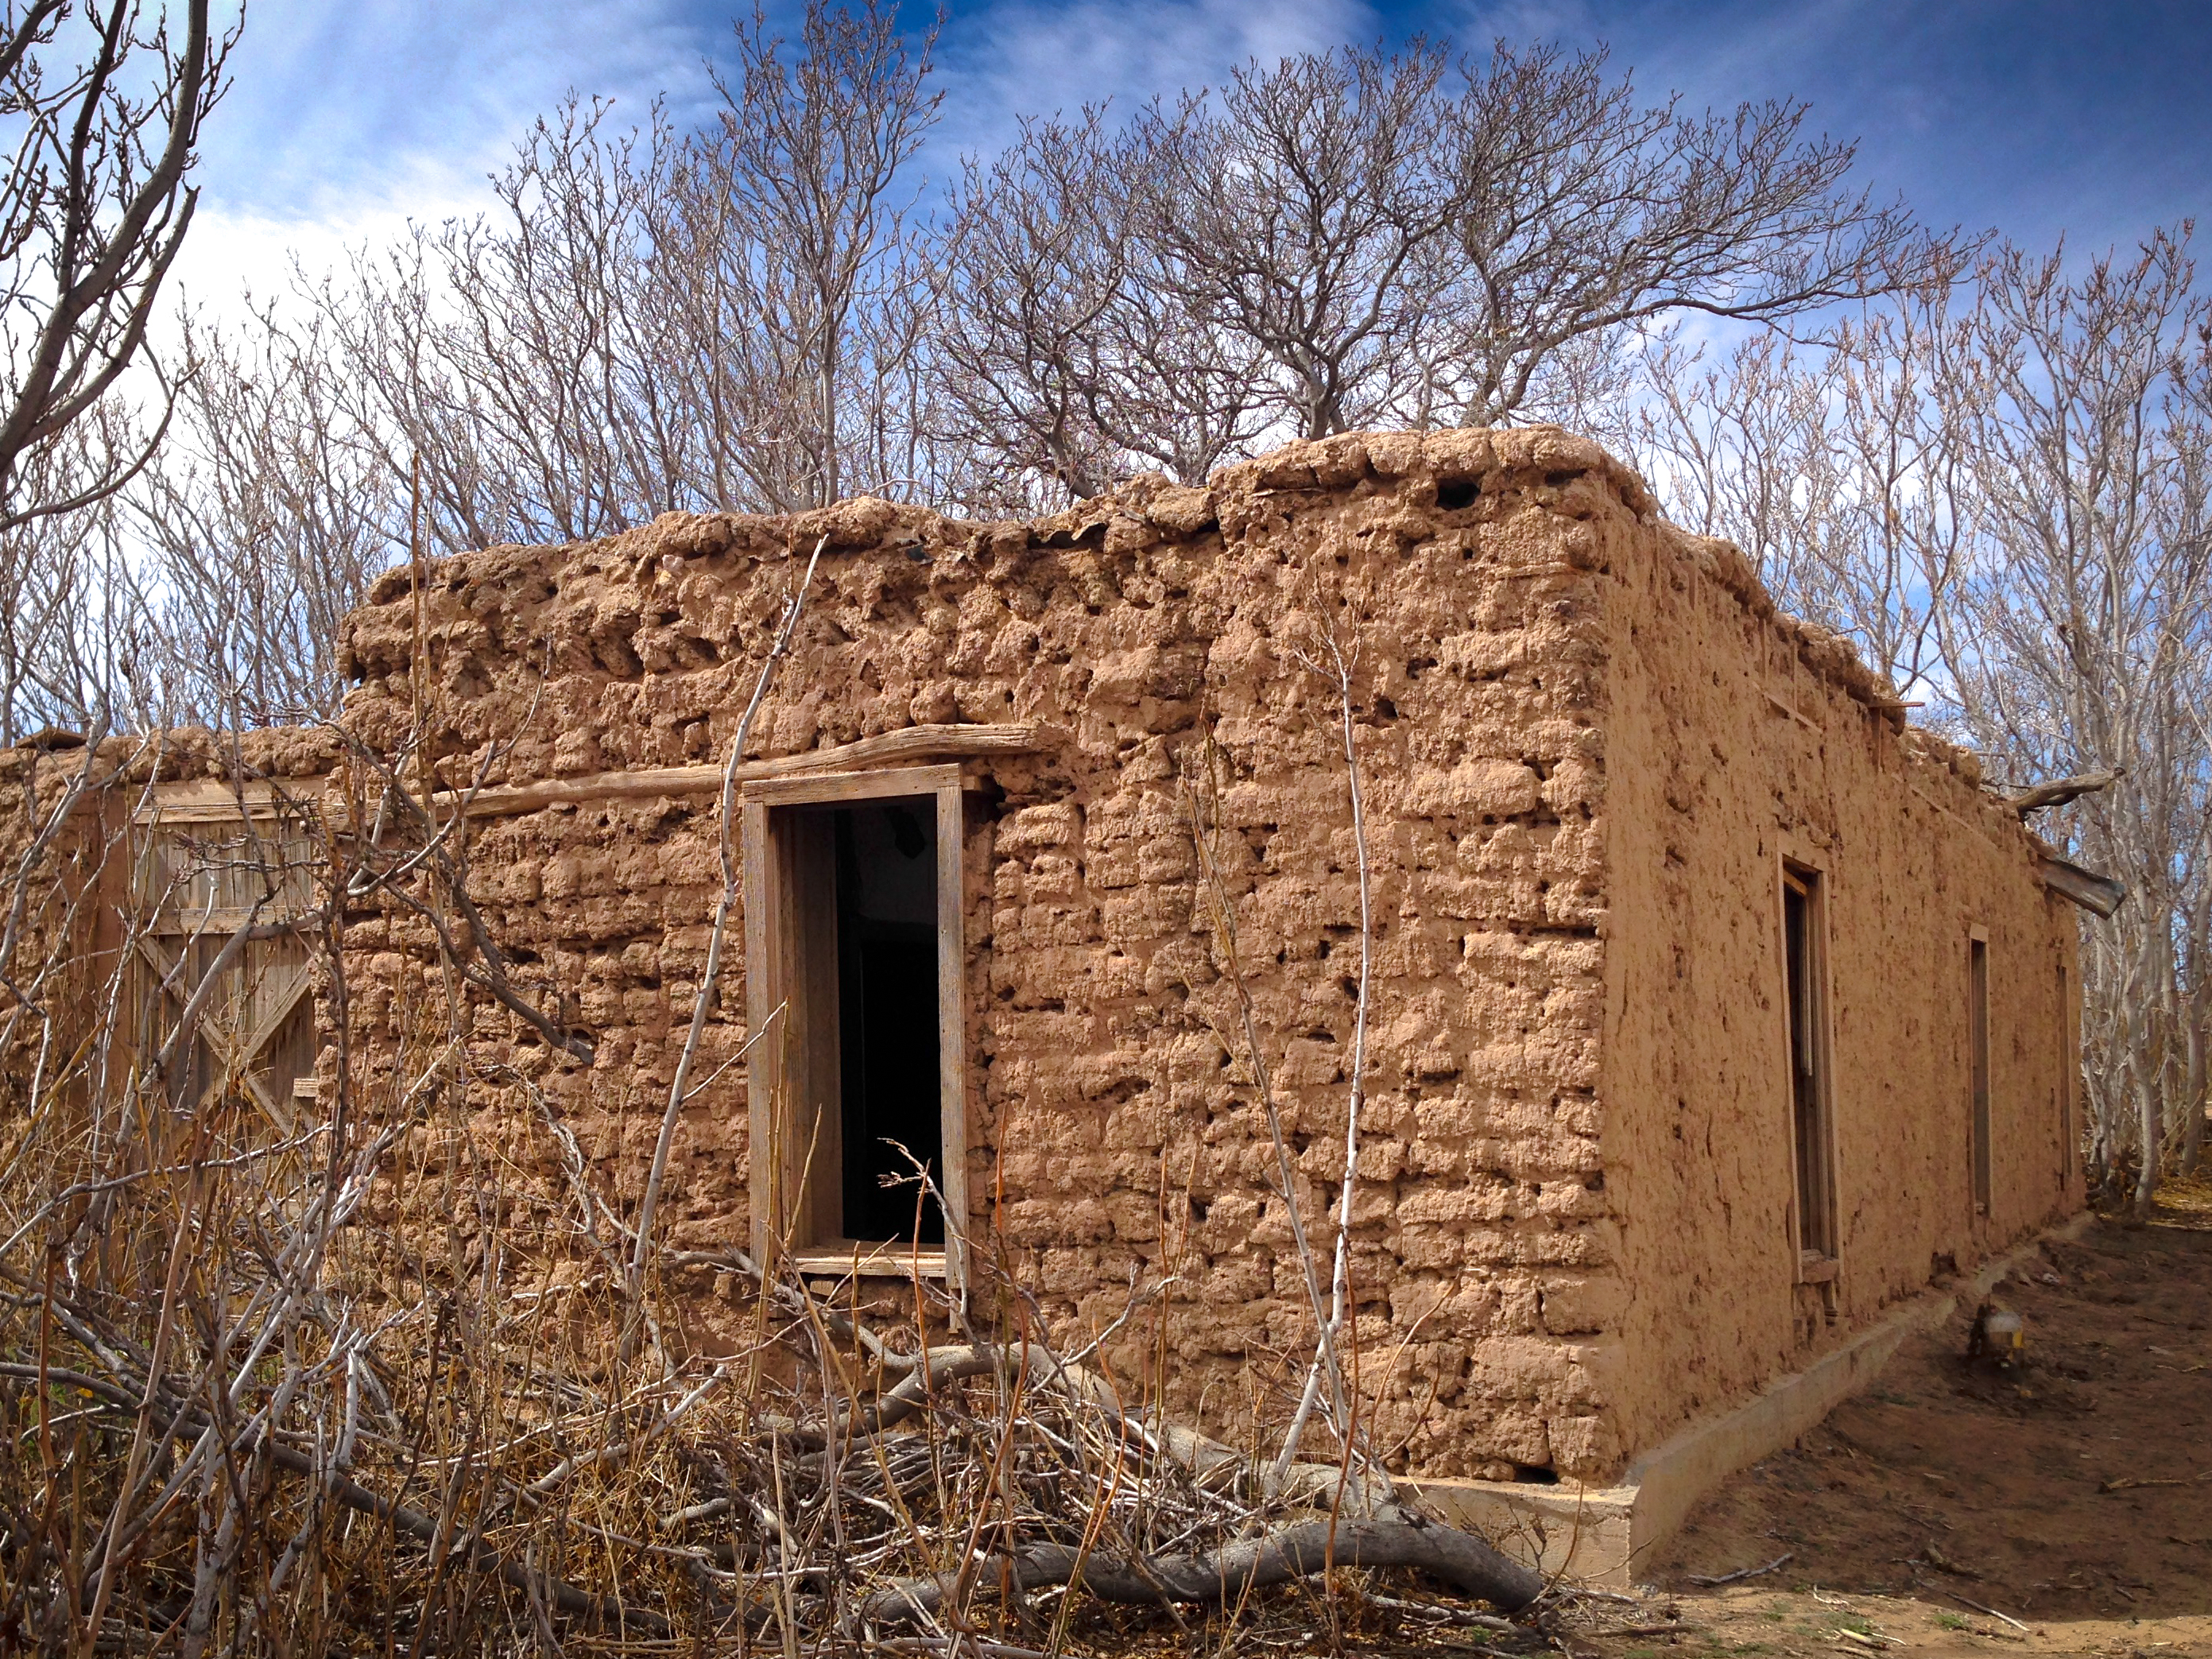 Abandoned Adobe exterior